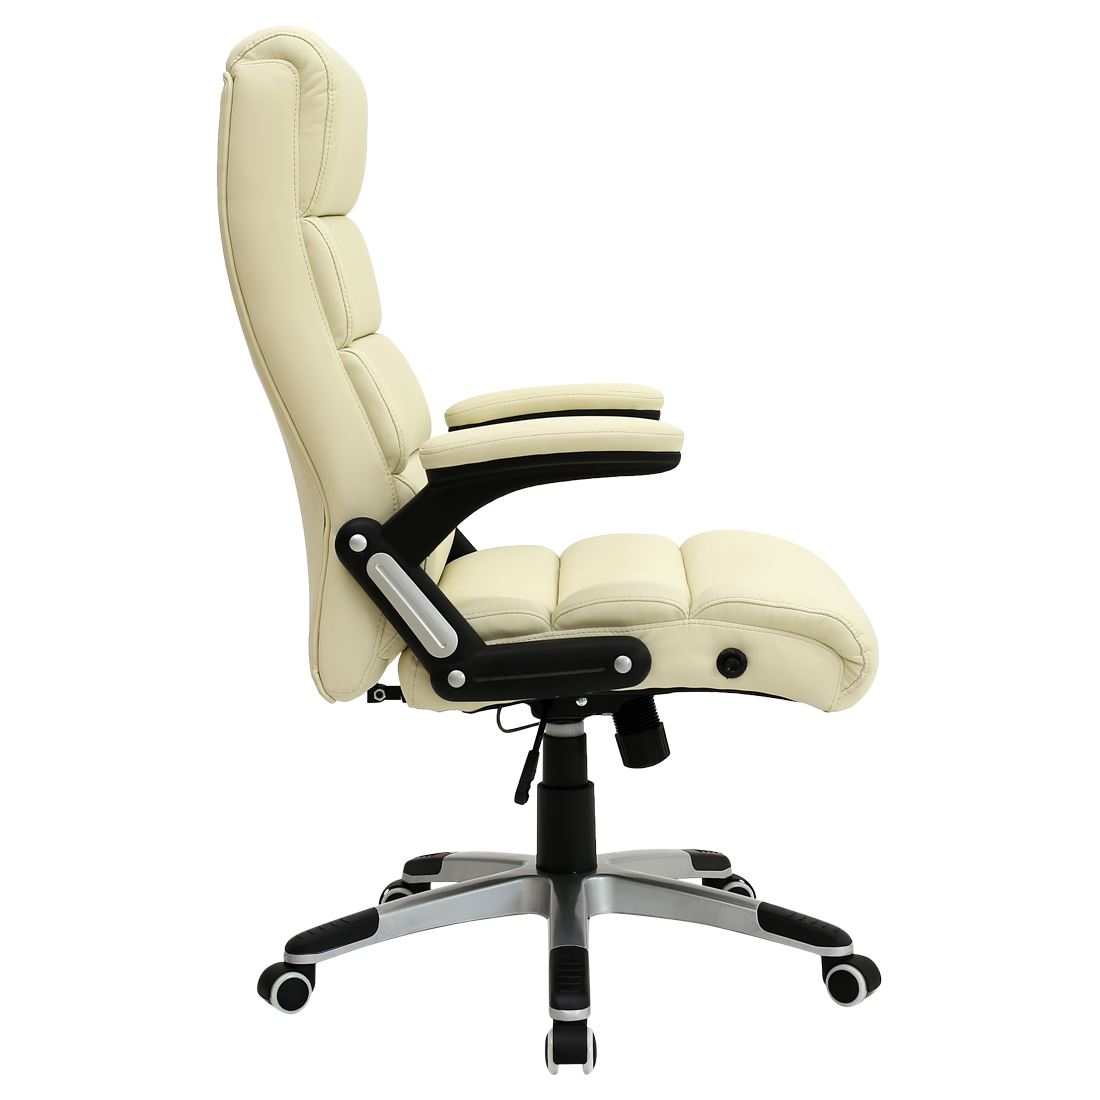 Havana Cream Luxury Reclining Executive Leather Office